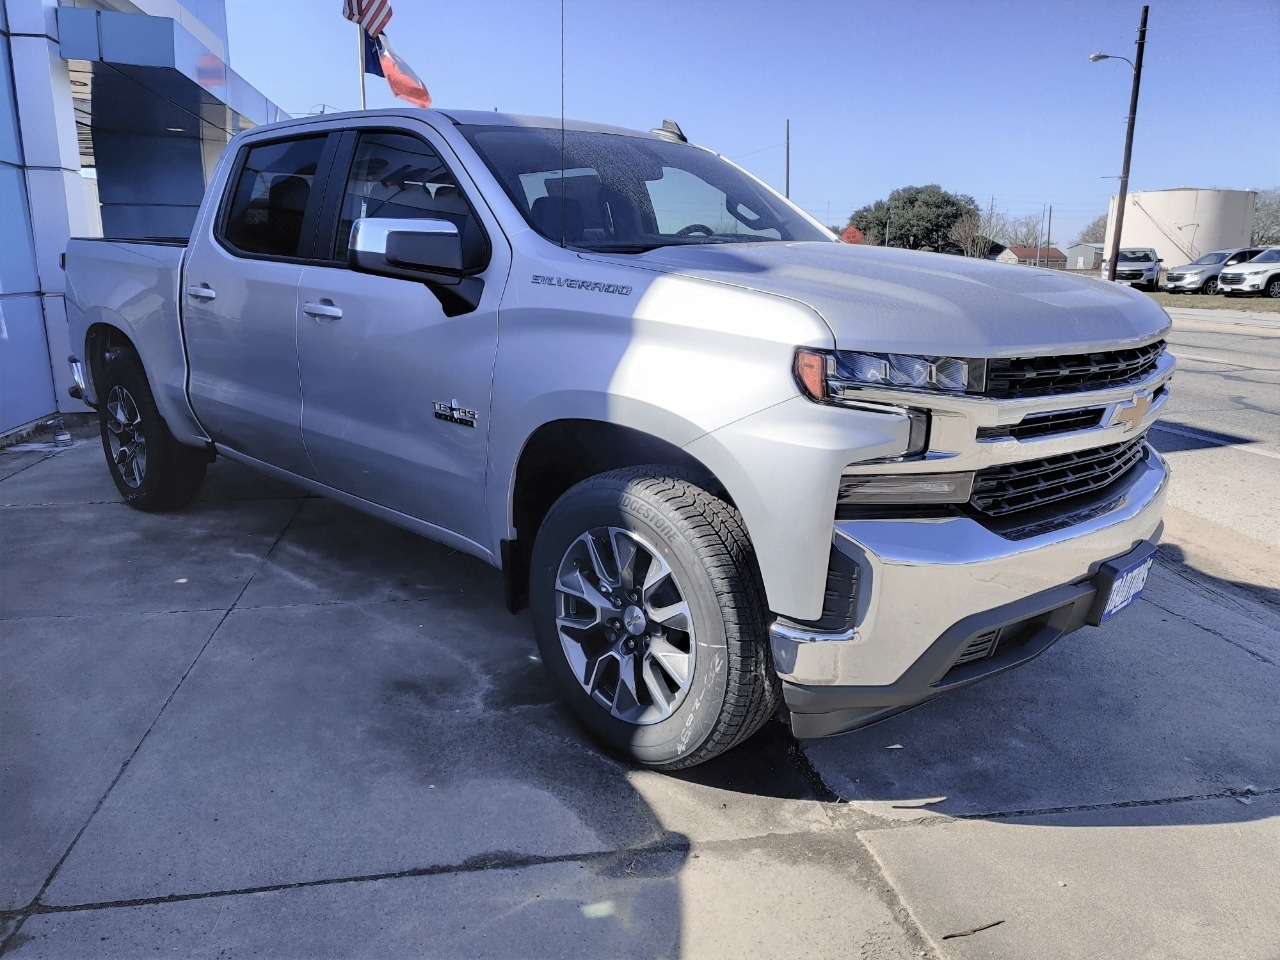 2021 Chevrolet Silverado 1500 Crew Cab Short Box 2-Wheel Dri photo